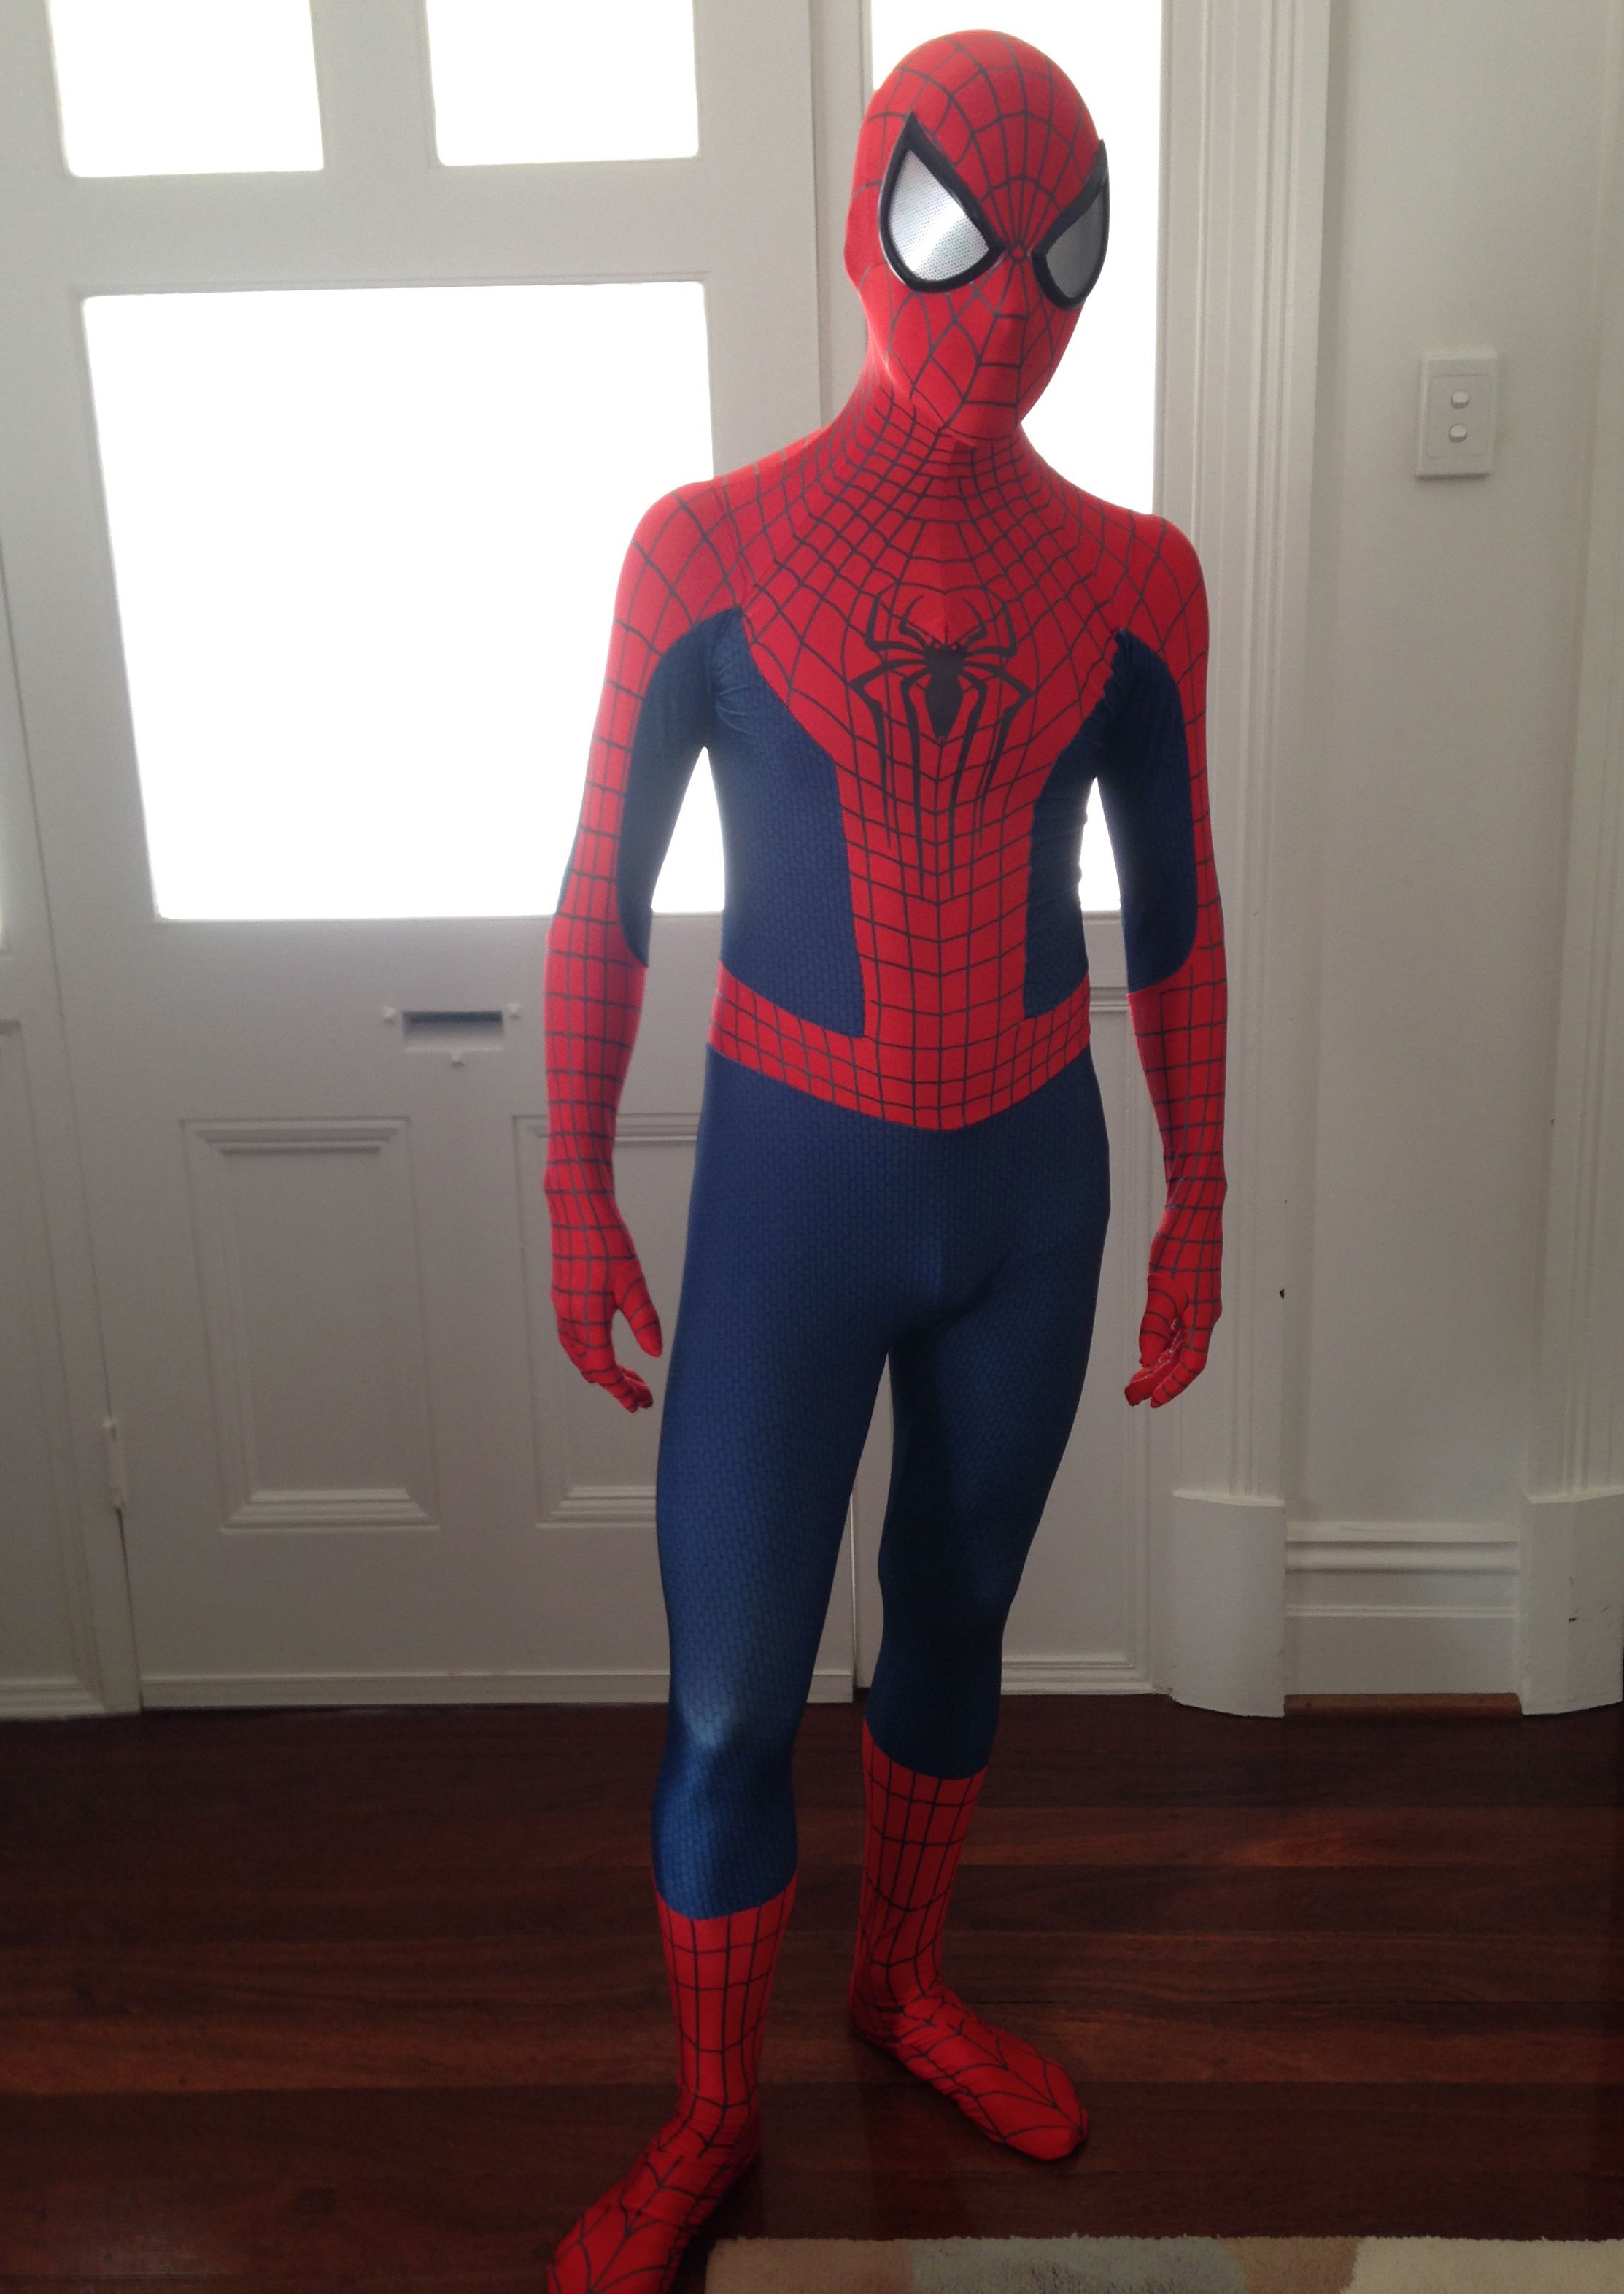 Amazing Spiderman Costume Kid And Adult Halloween Cosplay - Awesome video baby spiderman dancing